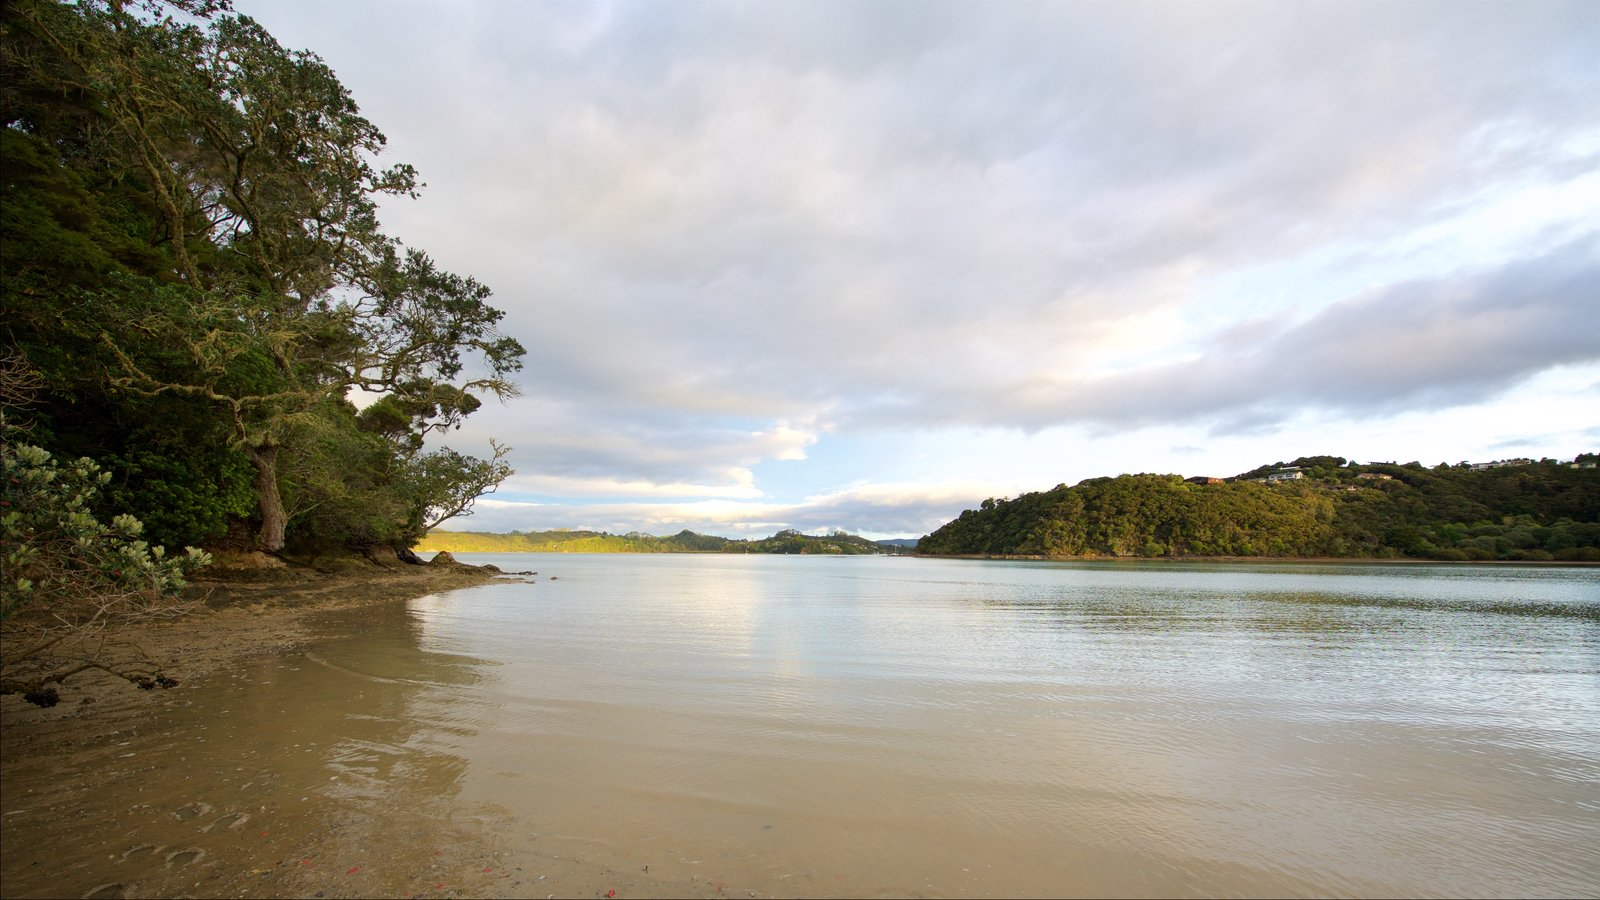 Paihia showing general coastal views and a bay or harbor